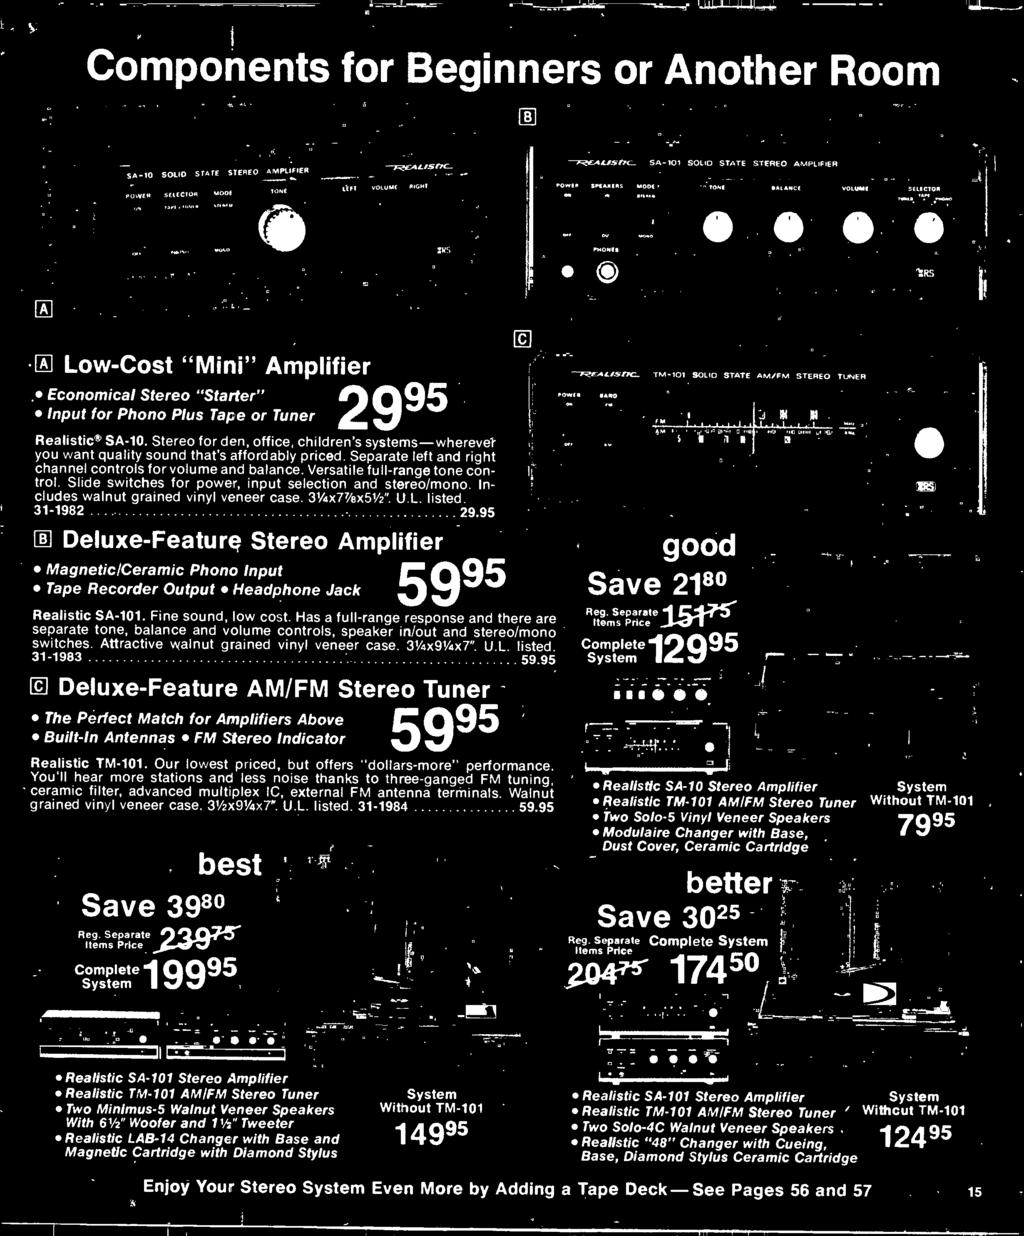 1977 Electronics Catalog Pdf Fet Preamp With Tone Control By 2n3819 Has A Full Range Response And There Are Separate Balance Volume Controls